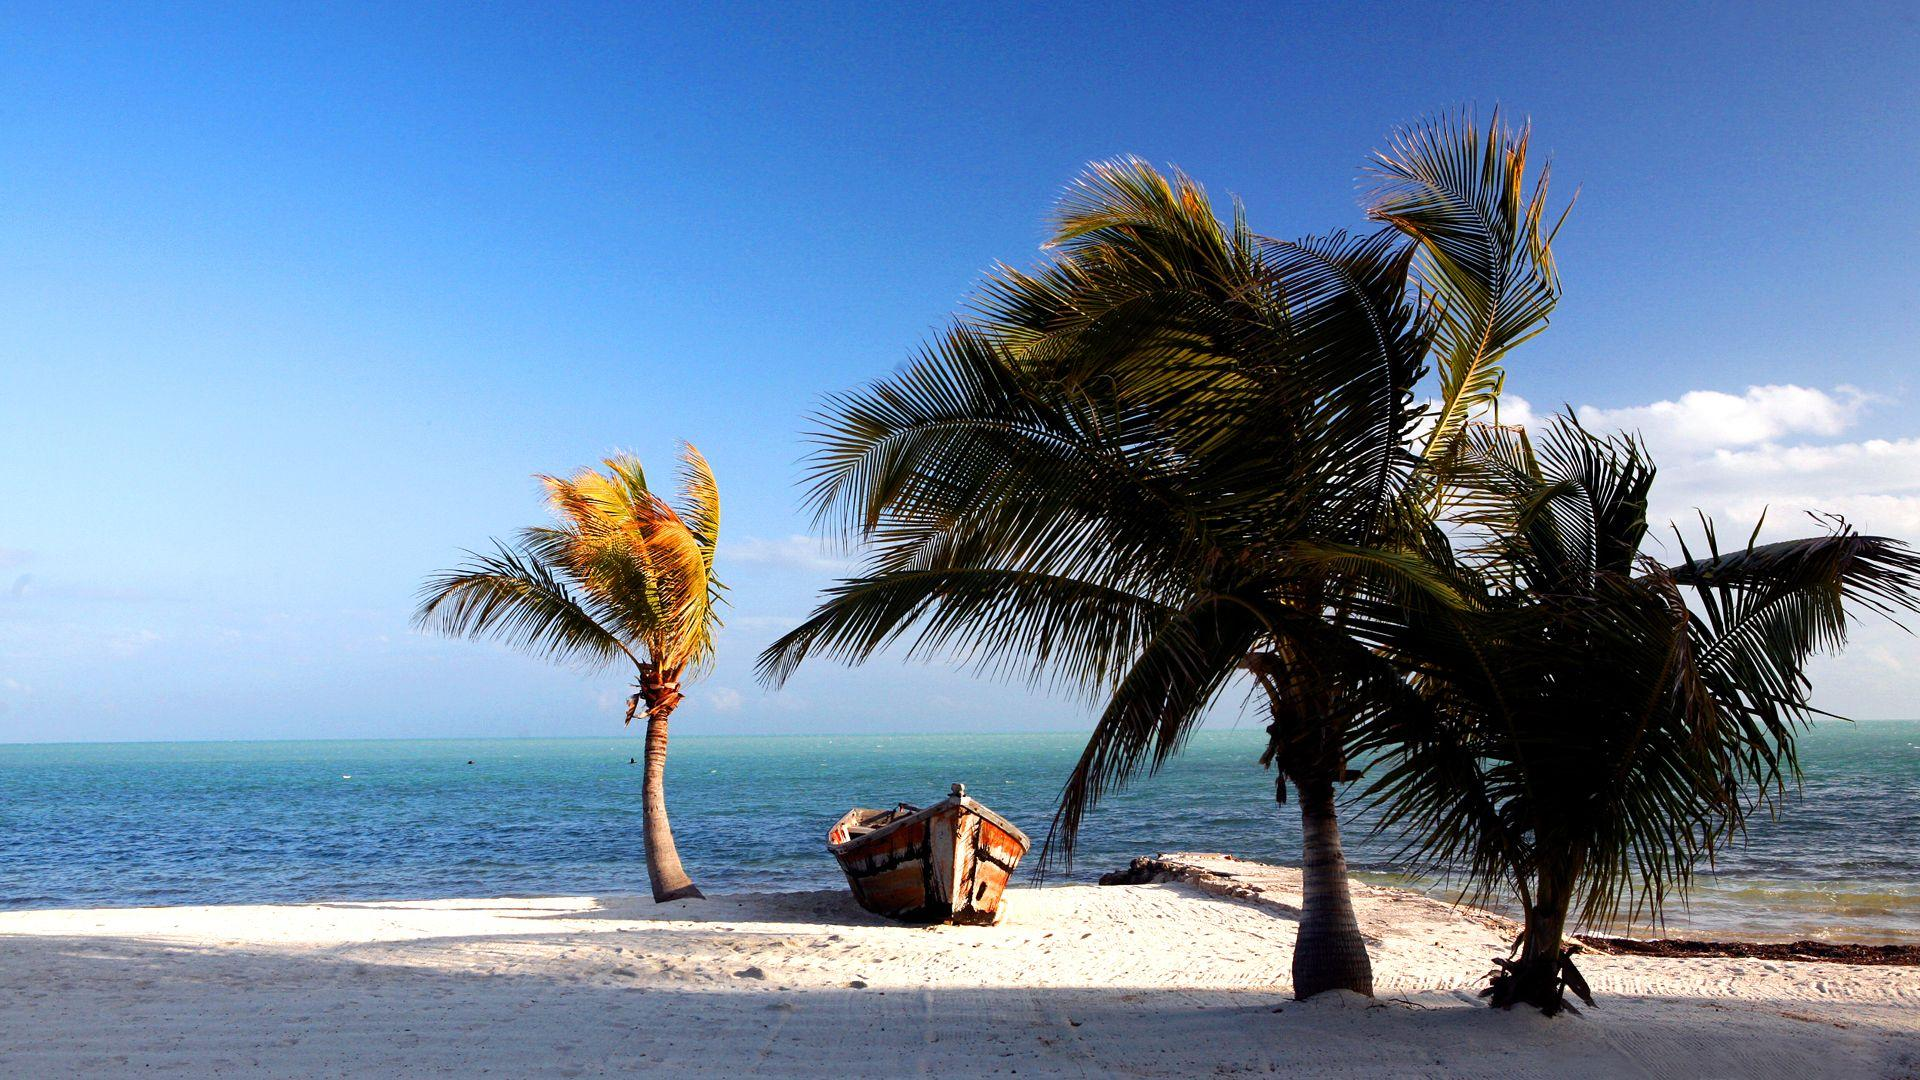 MK: Florida Keys Pictures Wallpaper, 40+ Beautiful Florida Keys